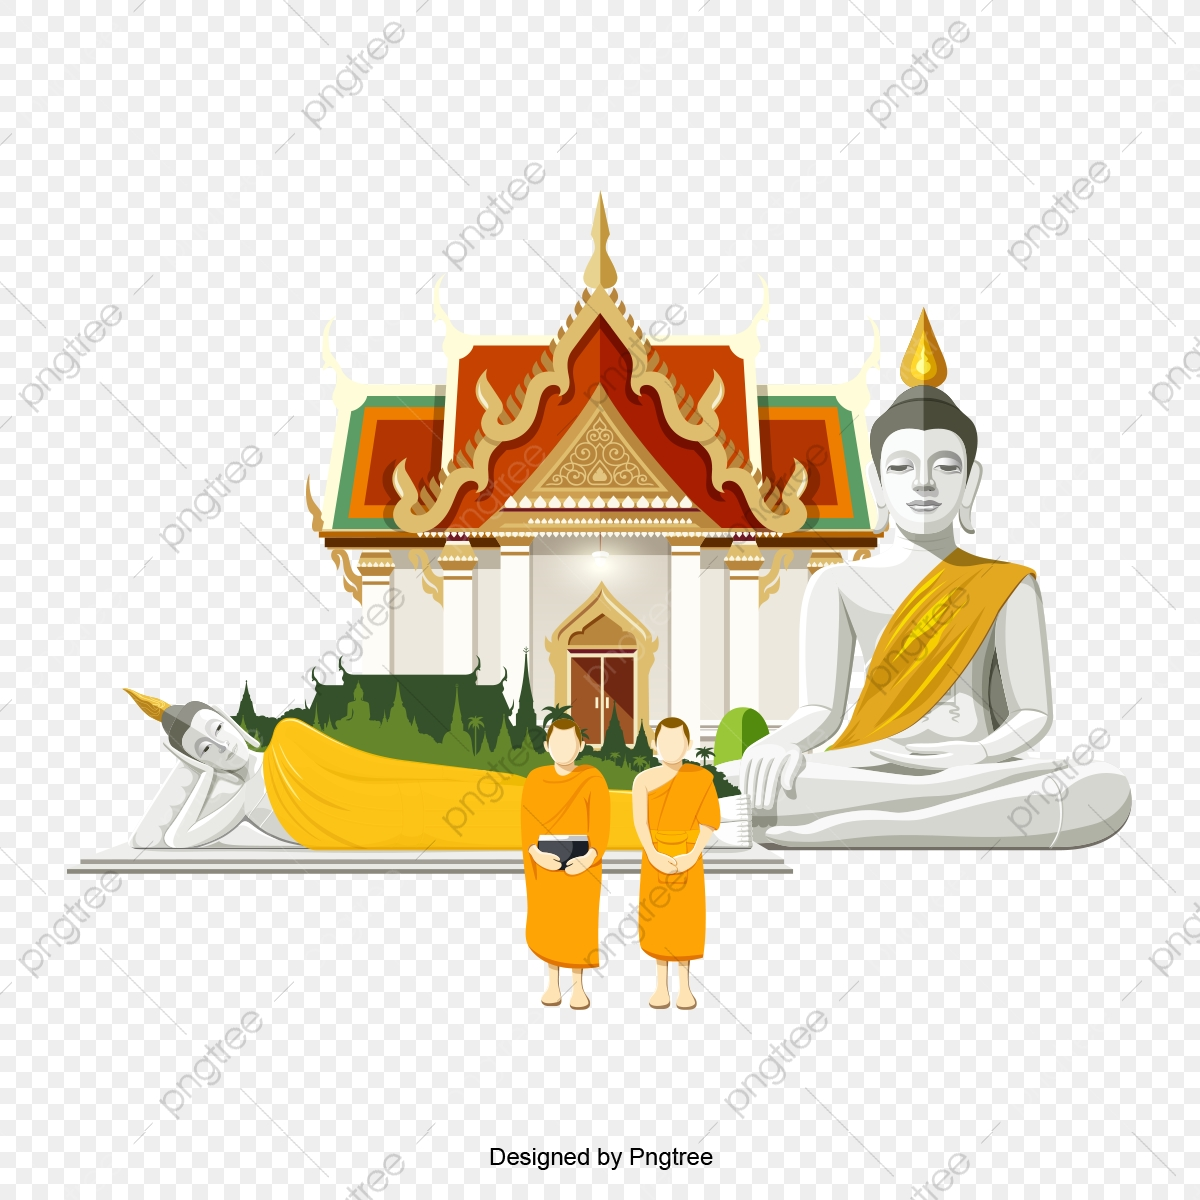 hight resolution of commercial use resource upgrade to premium plan and get license authorization upgradenow buddha buddha clipart